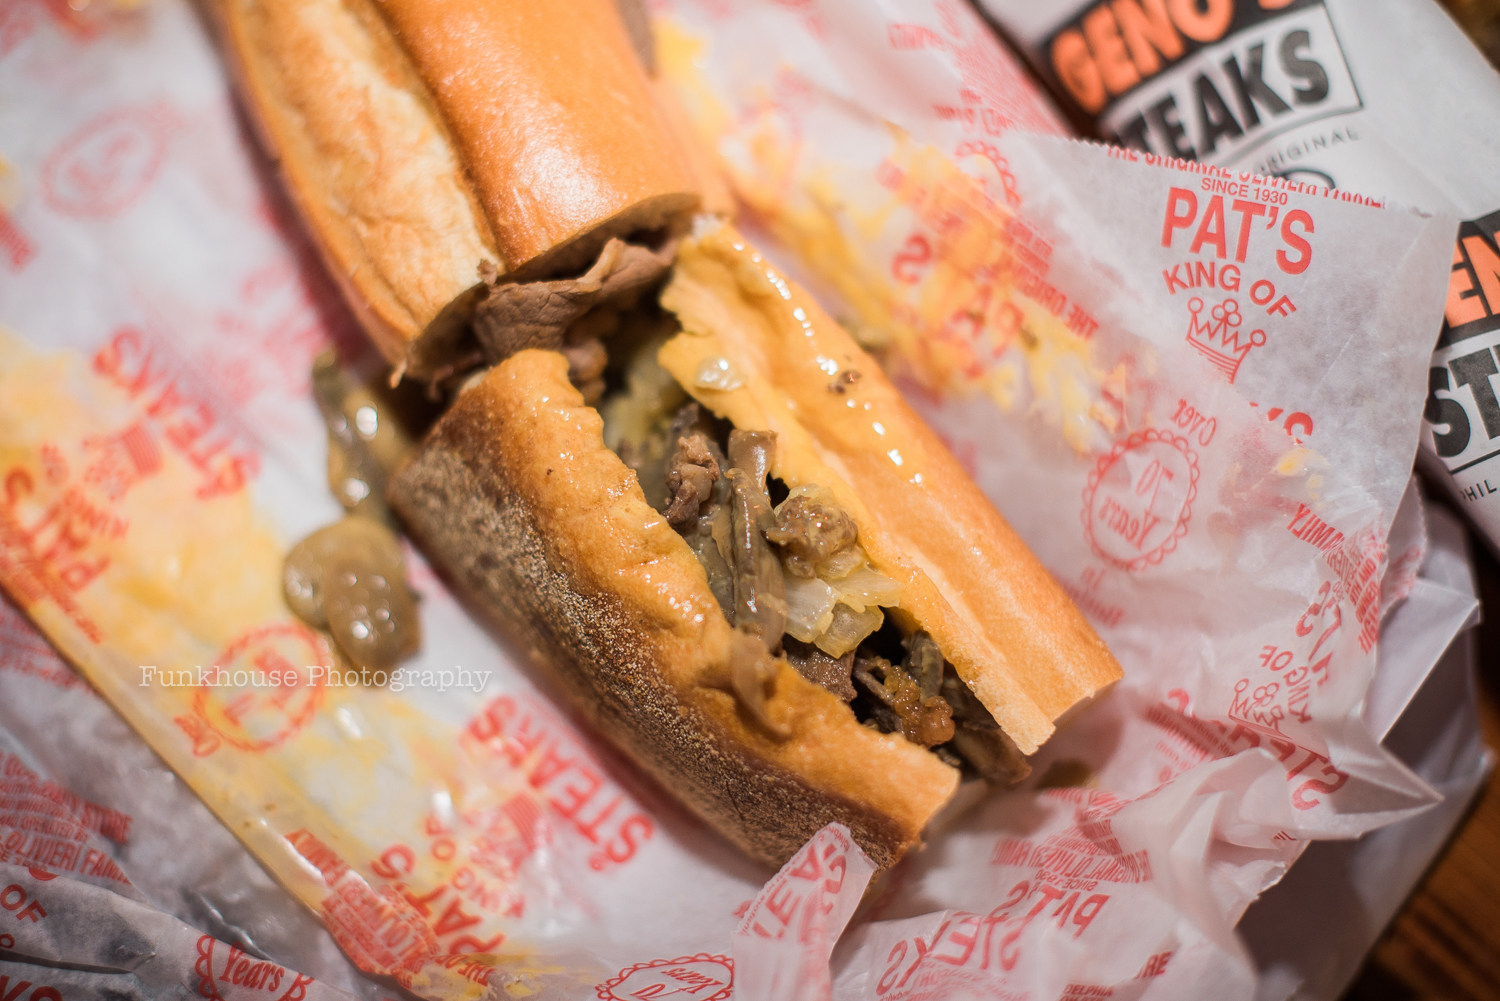 pats-king-of-steaks